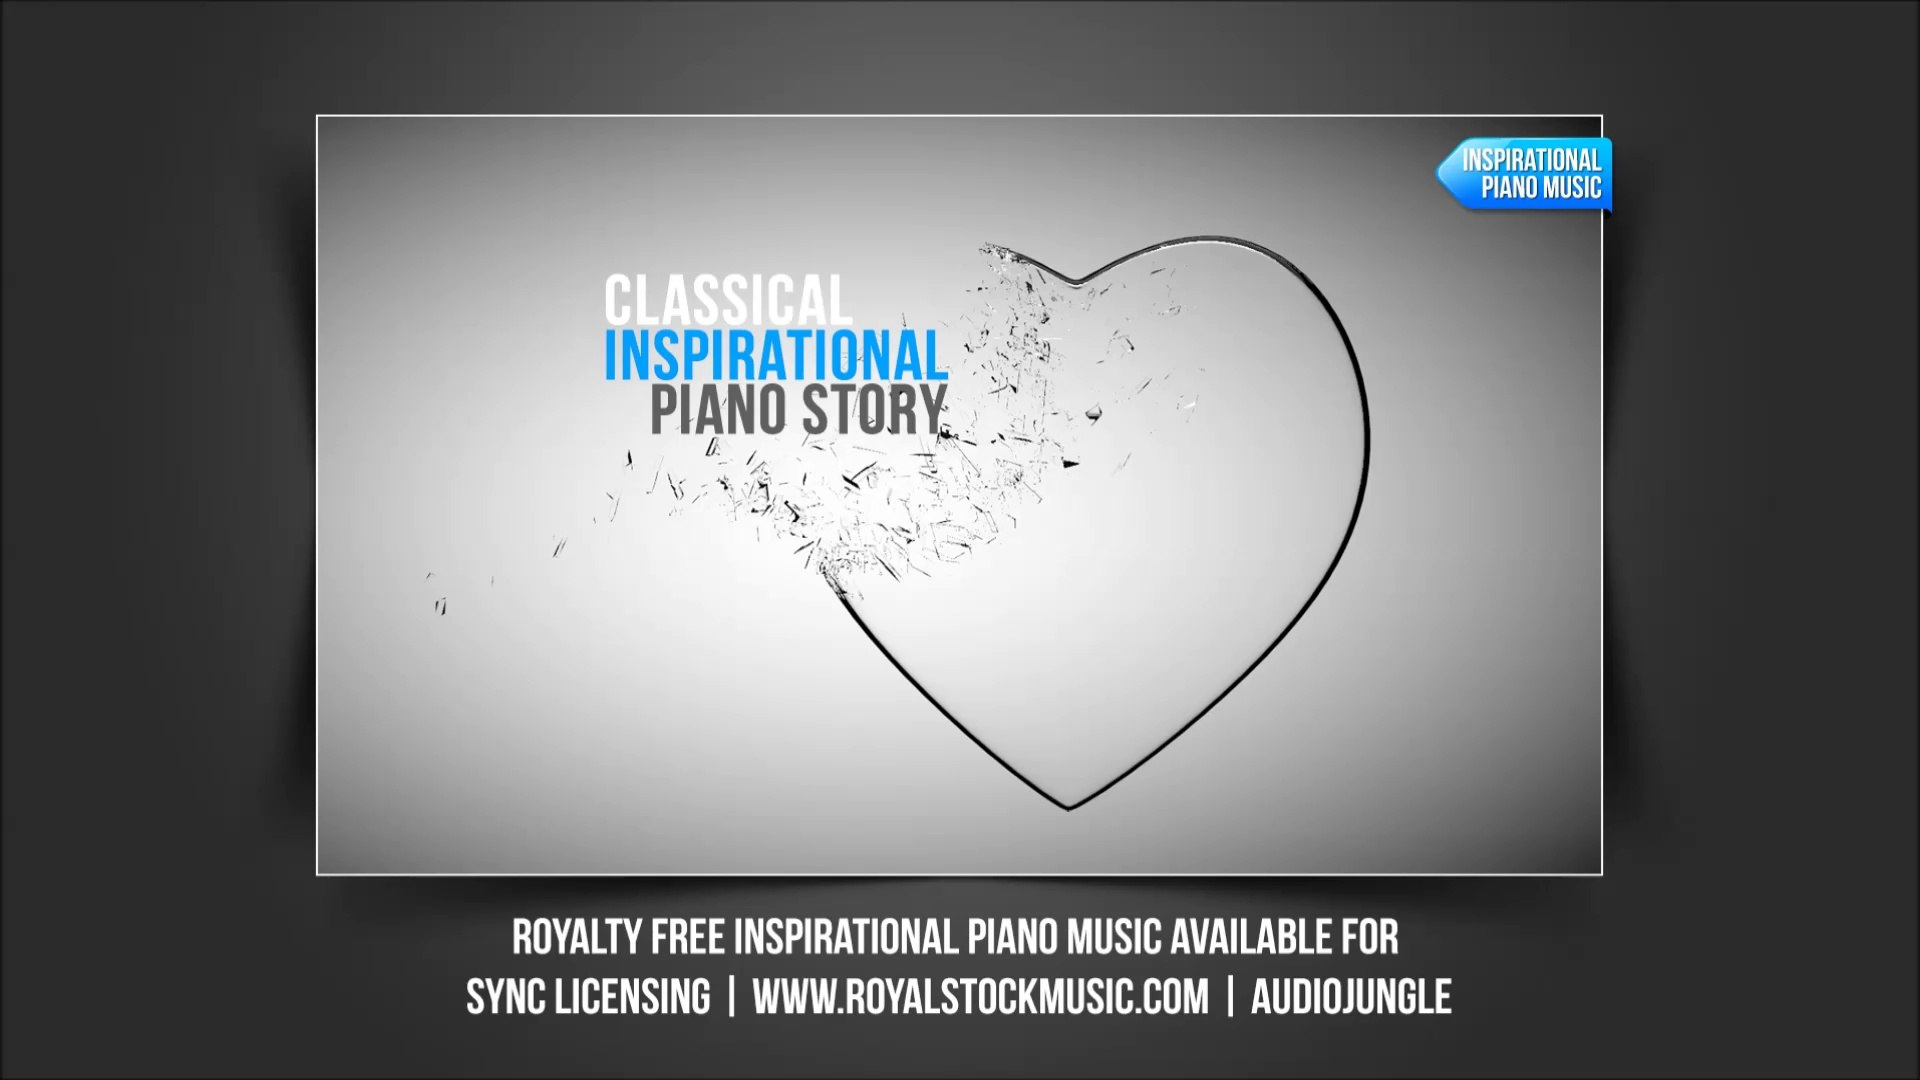 Classical Inspirational Piano Story | Inspiring Piano | Premium Royalty Free Stock Music by royalsto